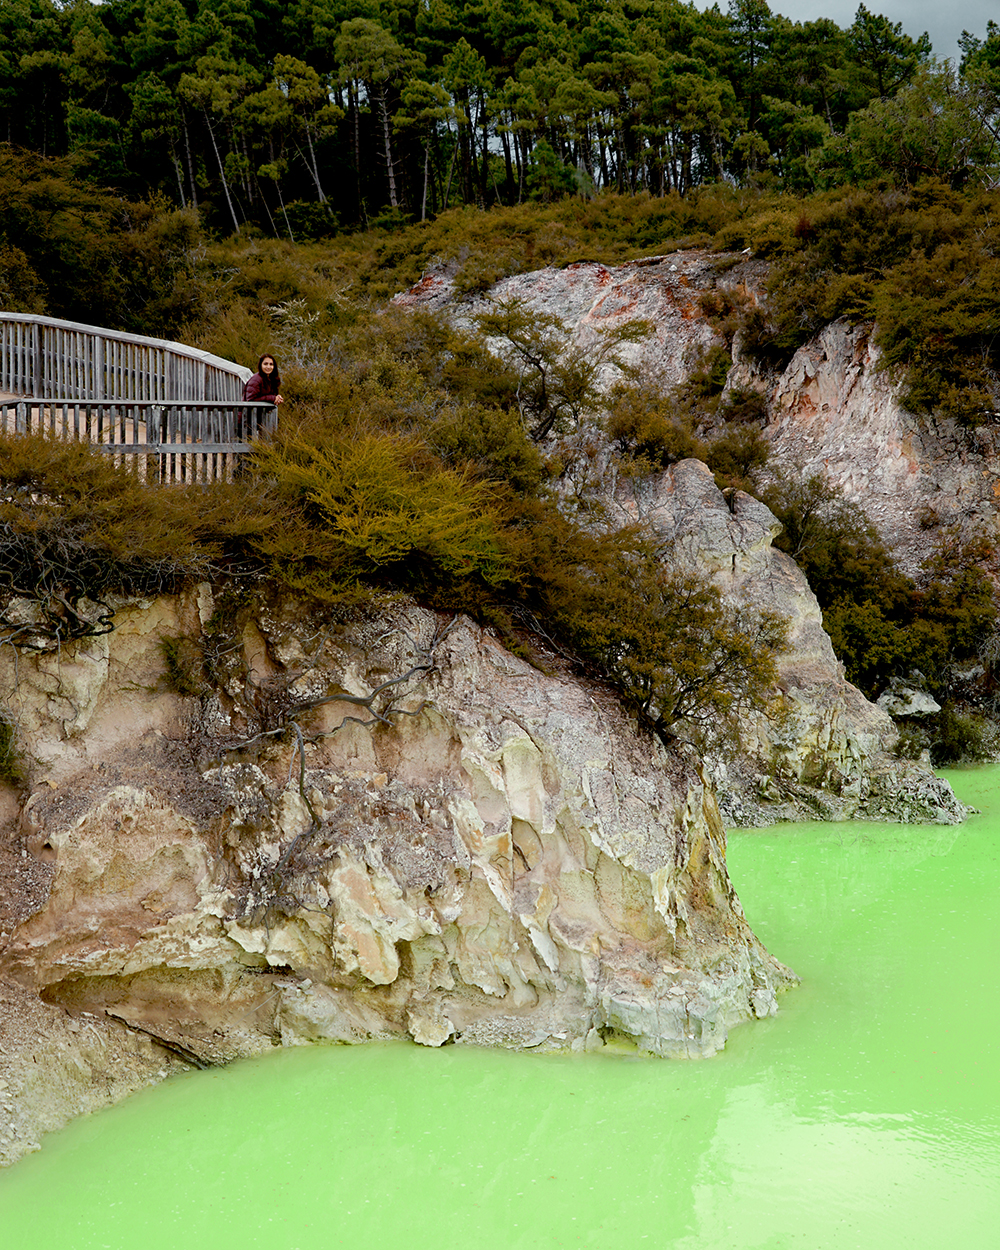 Wai-O-Tapu, Thermal Wonderland, Geothermal, Geothermal Activity, Thermal Pool